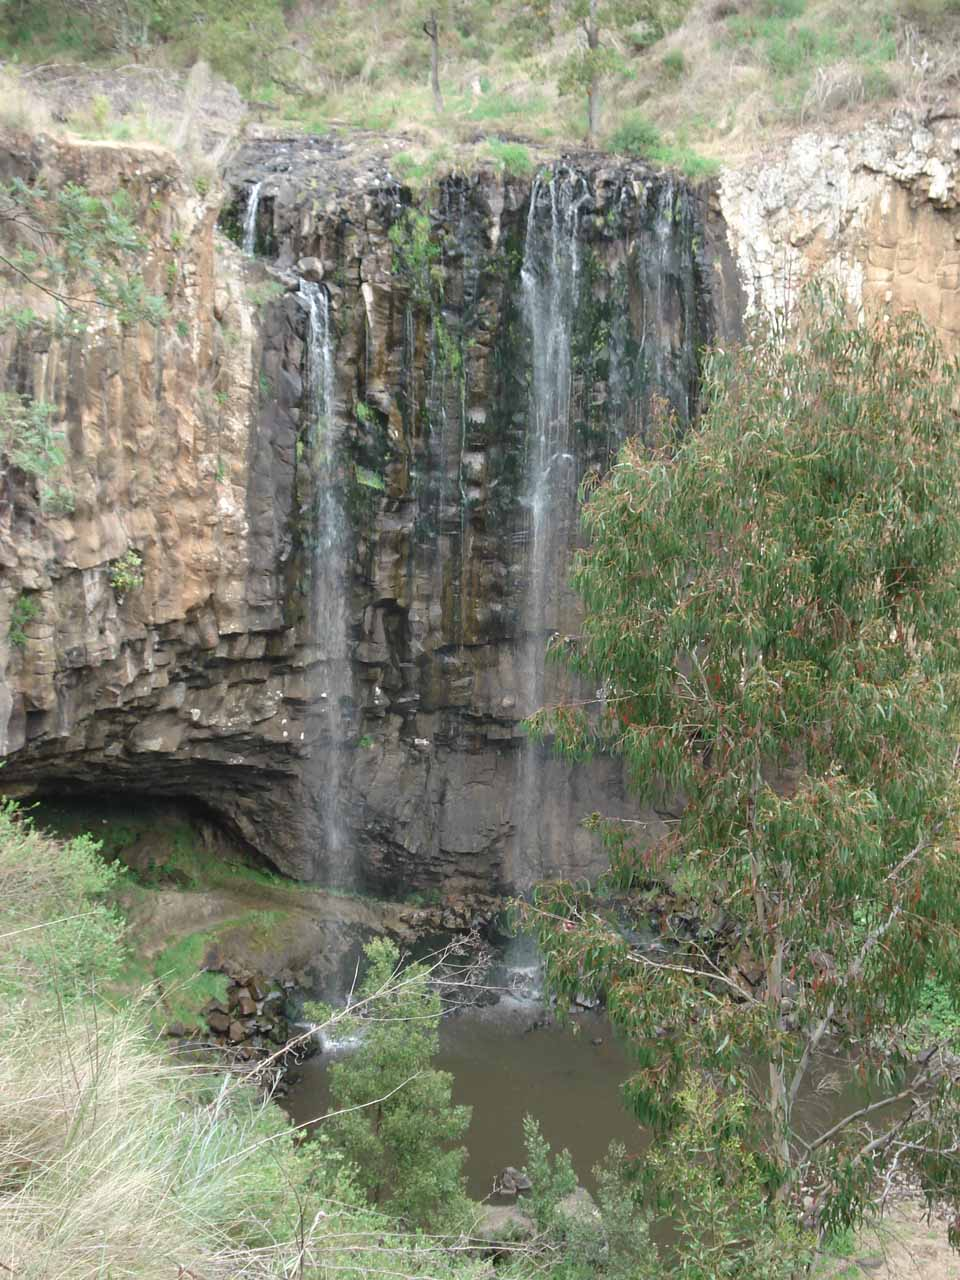 To compare our first visit with our second visit, here's a photo of Trentham Falls taken from the overlook in November 2006